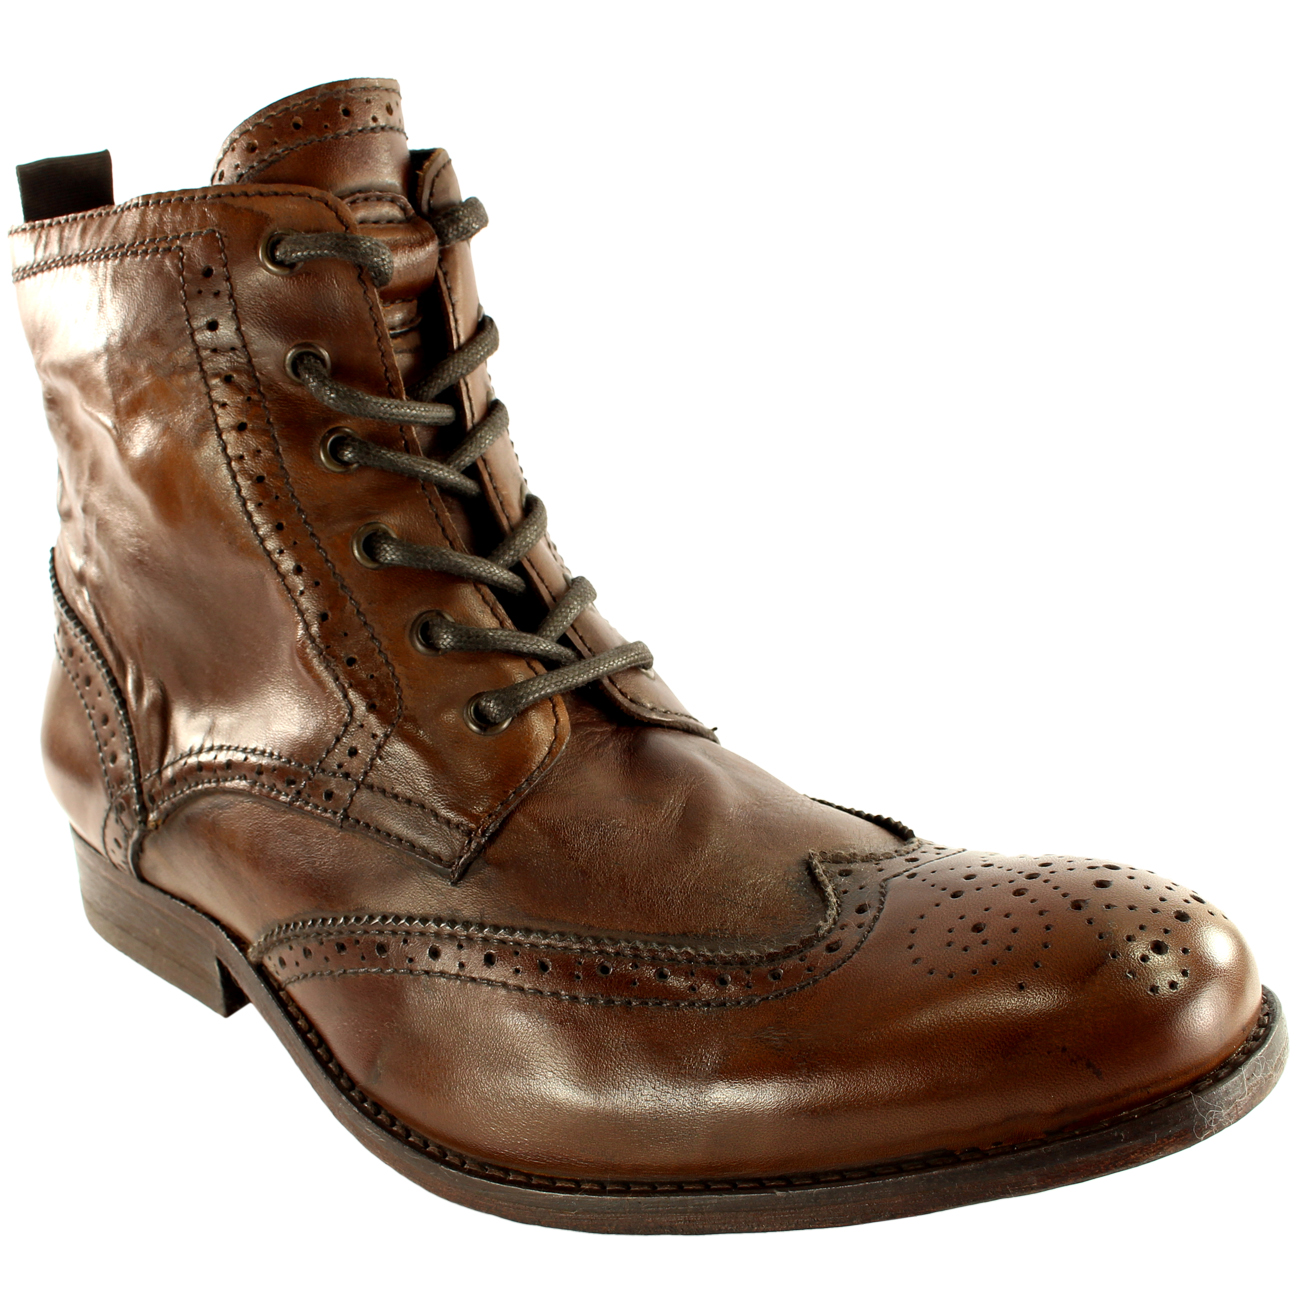 625f09469c87 Mens H By Hudson Angus Brogue Leather Lace Up Smart Ankle Boots New All  Sizes